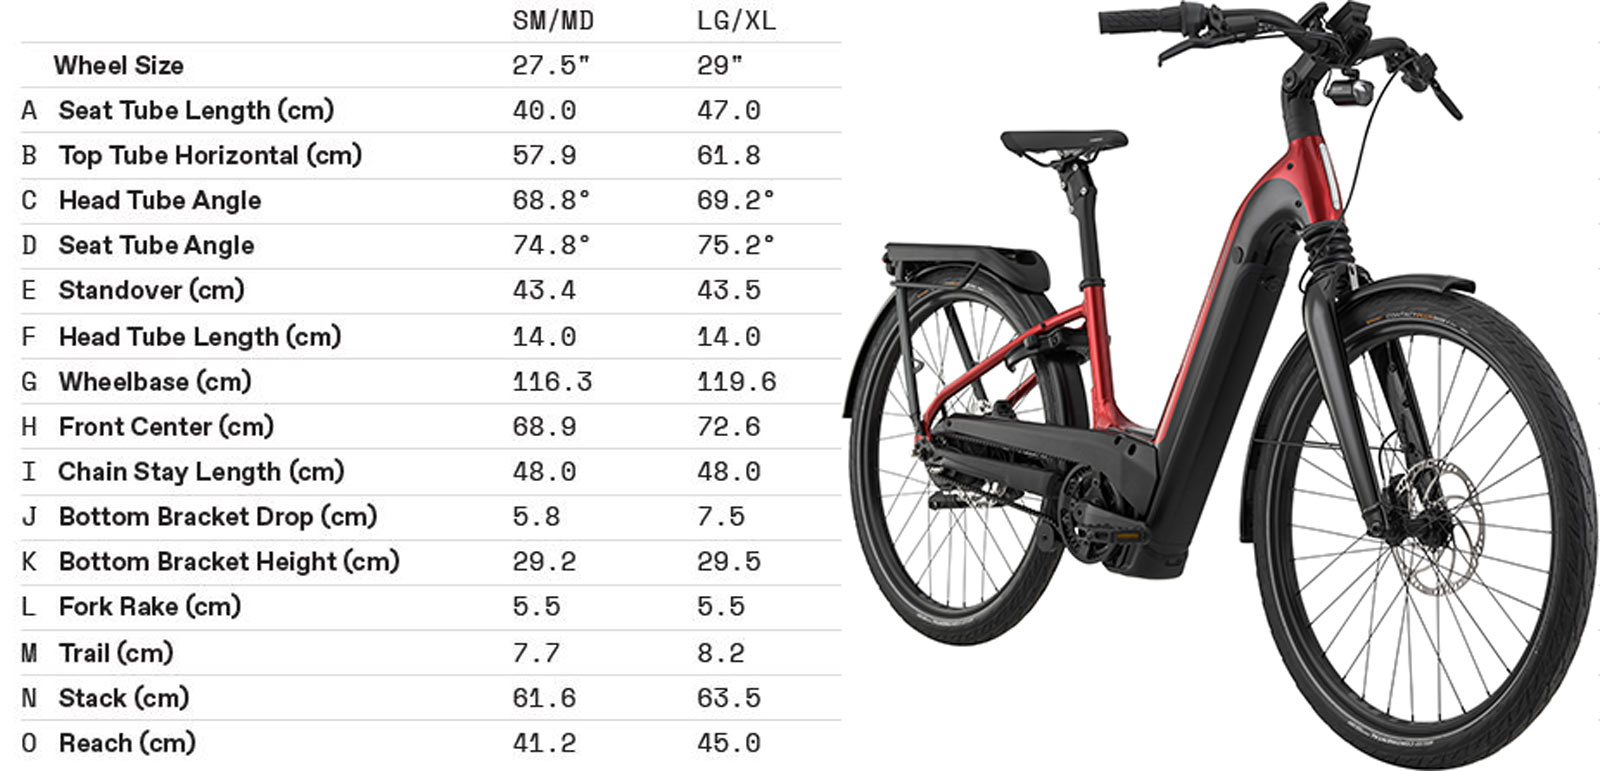 Geometry chart for the low step-thrume version of the 2022 Cannondale Movaro Neo